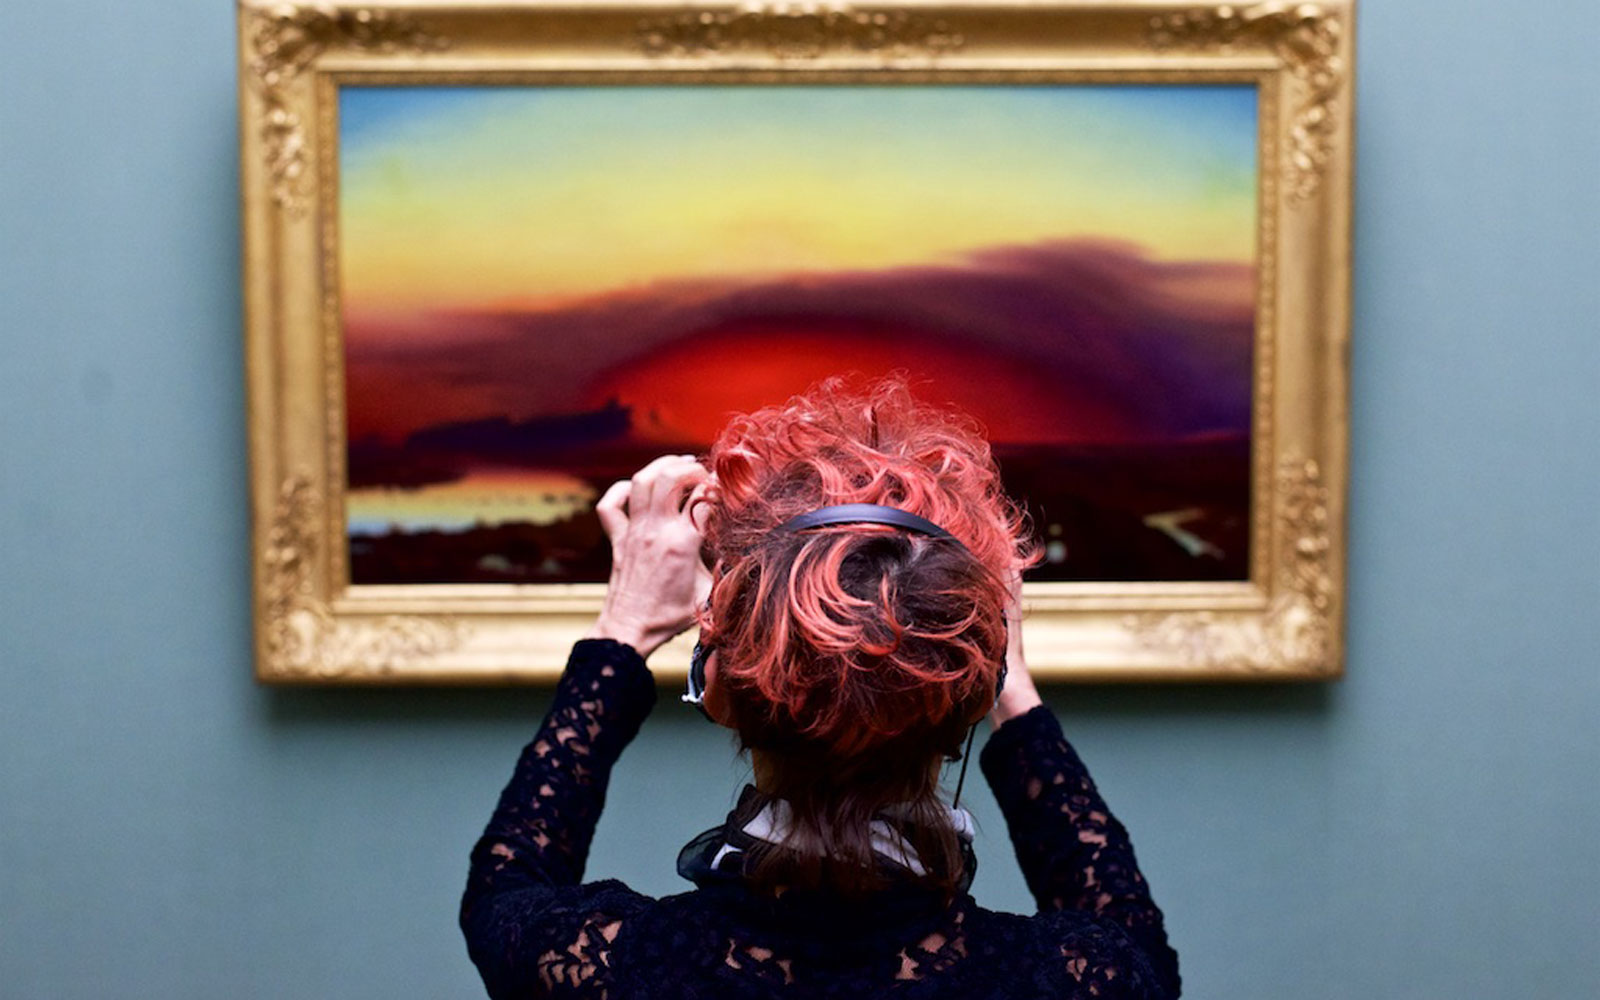 This Photographer Captures Museum-goers Who Look Like the Art